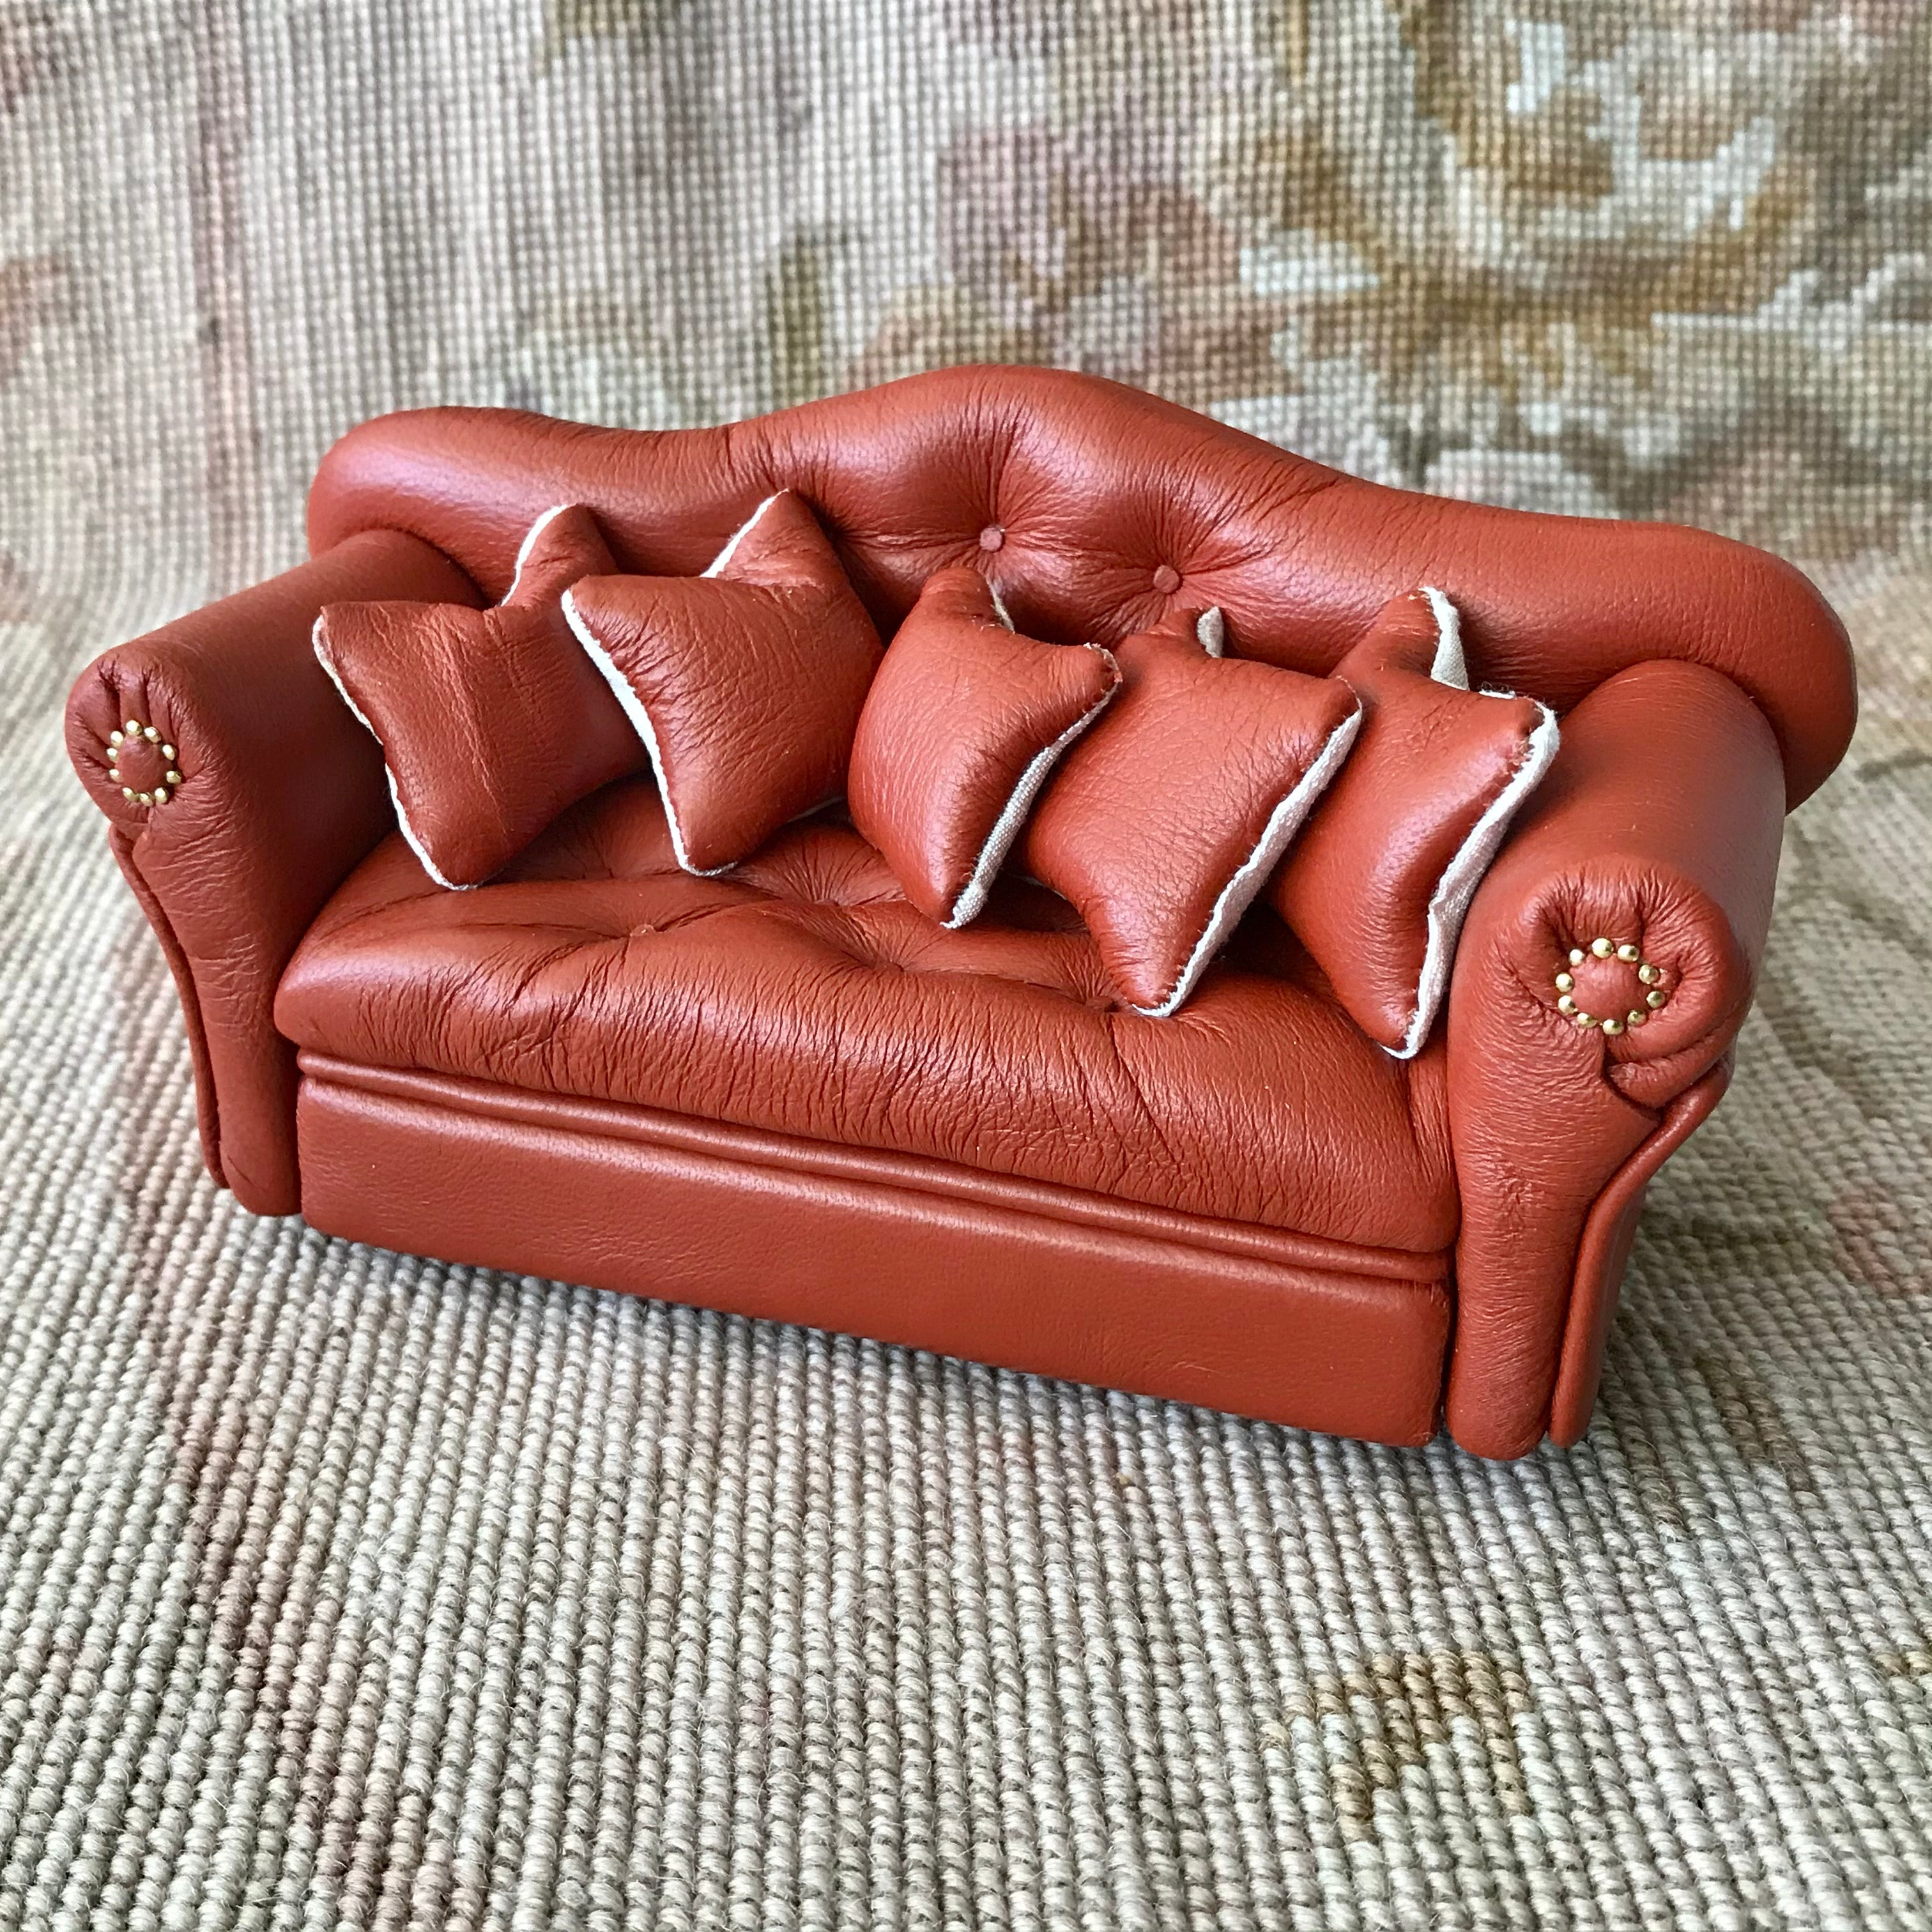 Sofa Couch Lounge Divan Settee  Leather with Pillows 1:12 Dollhouse Miniature